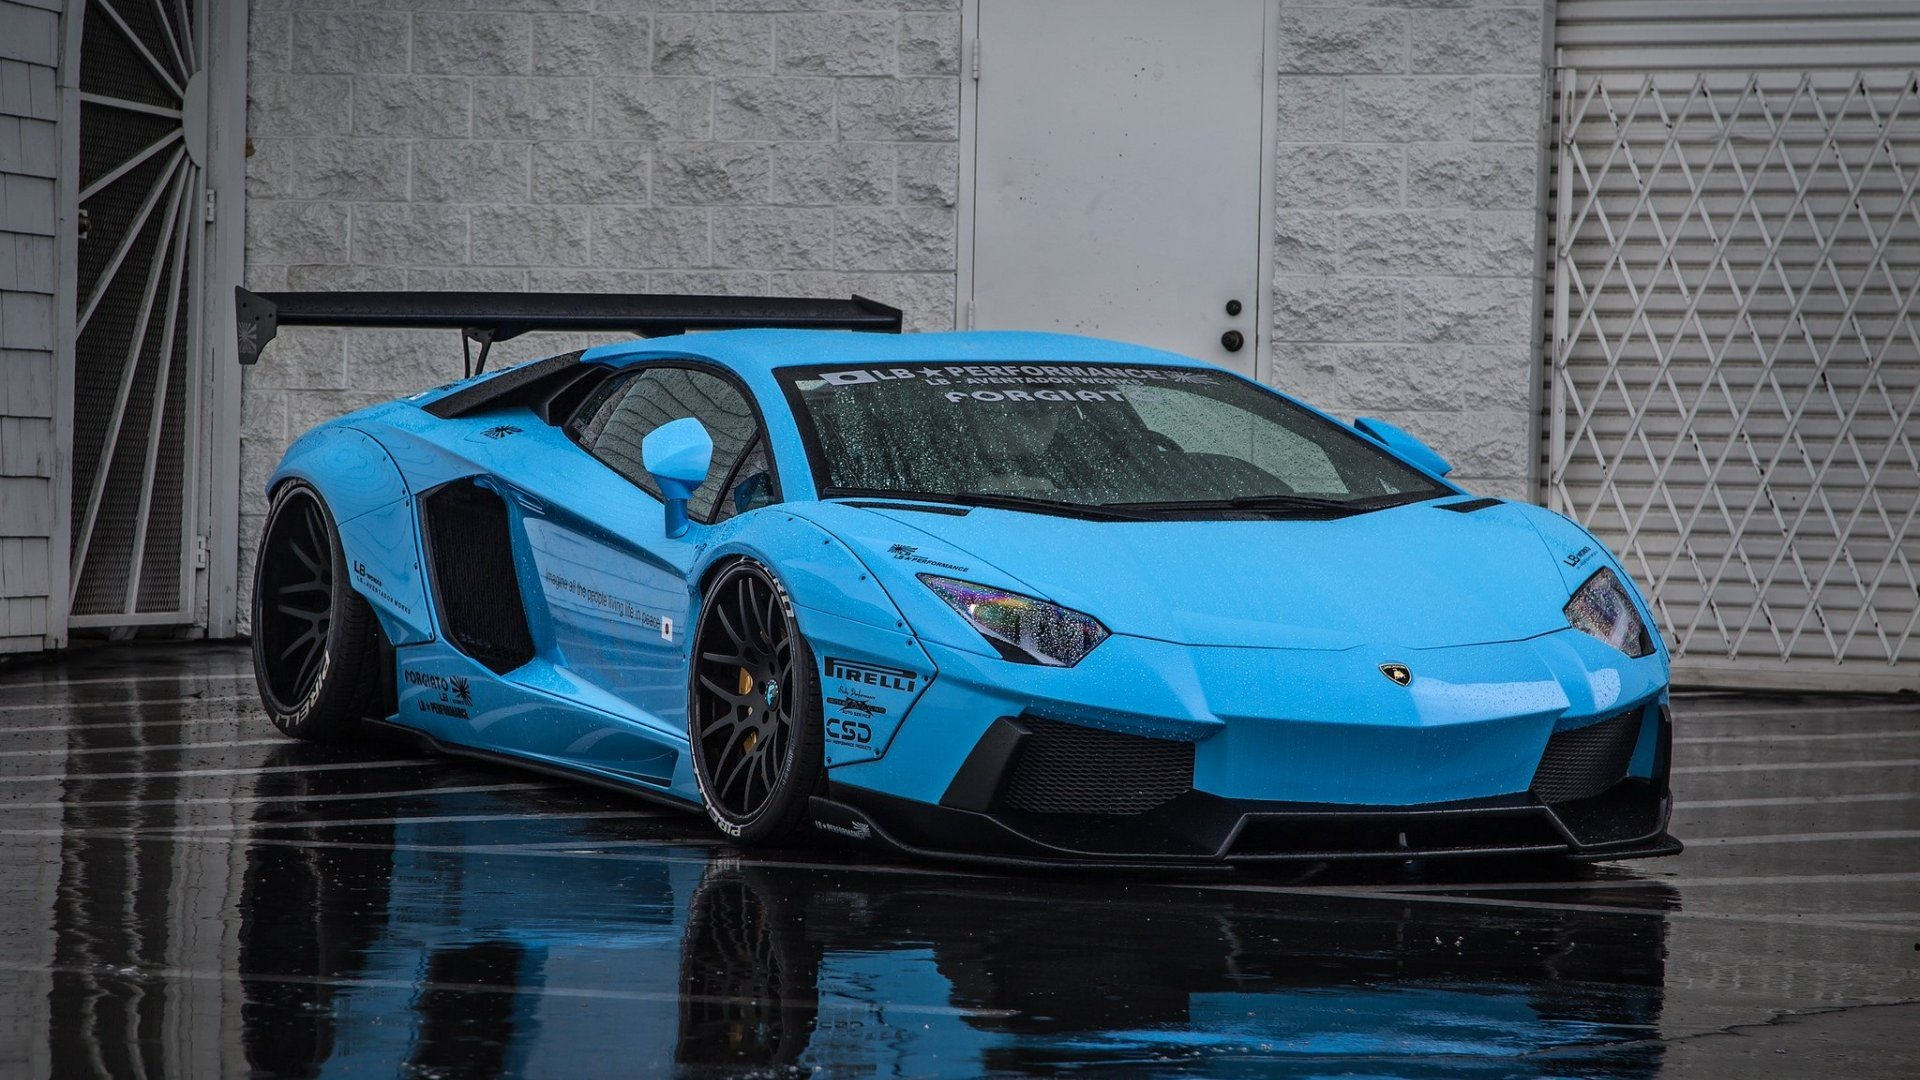 Awesome Lamborghini Aventador Free Wallpaper Id 323927 For Full Hd